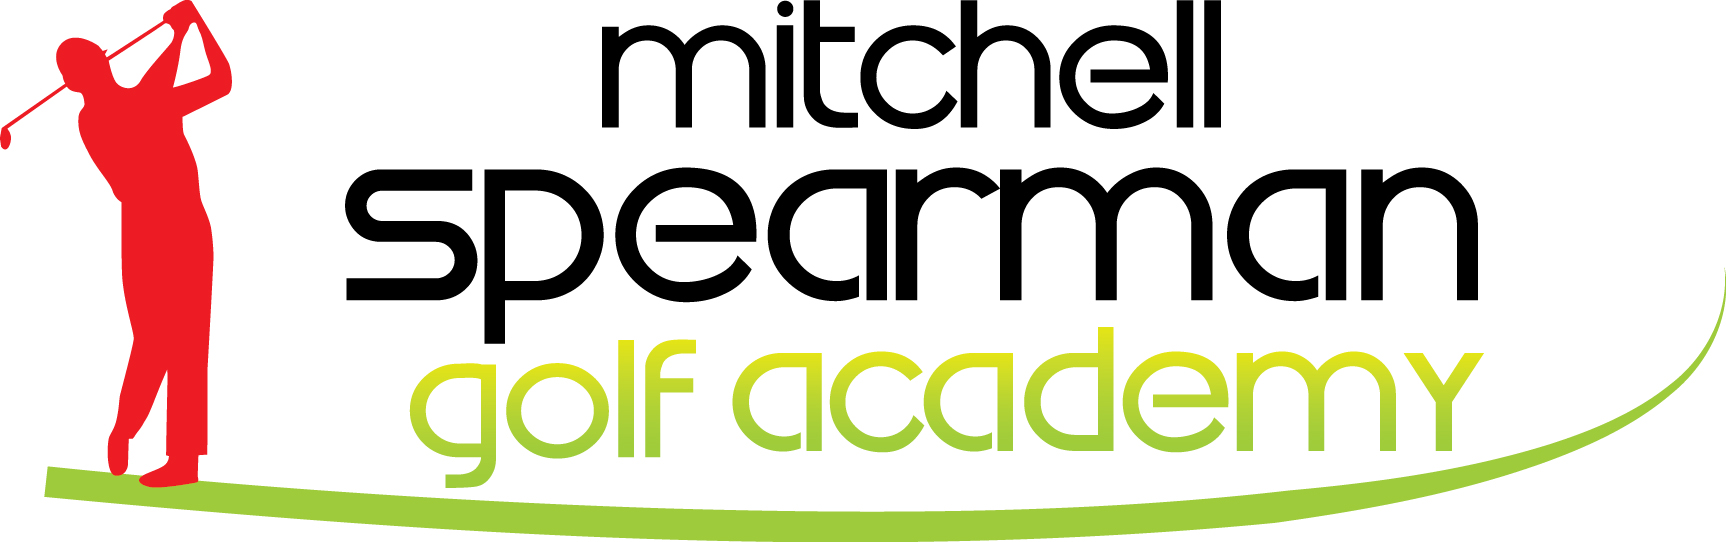 Spearman Golf Academy